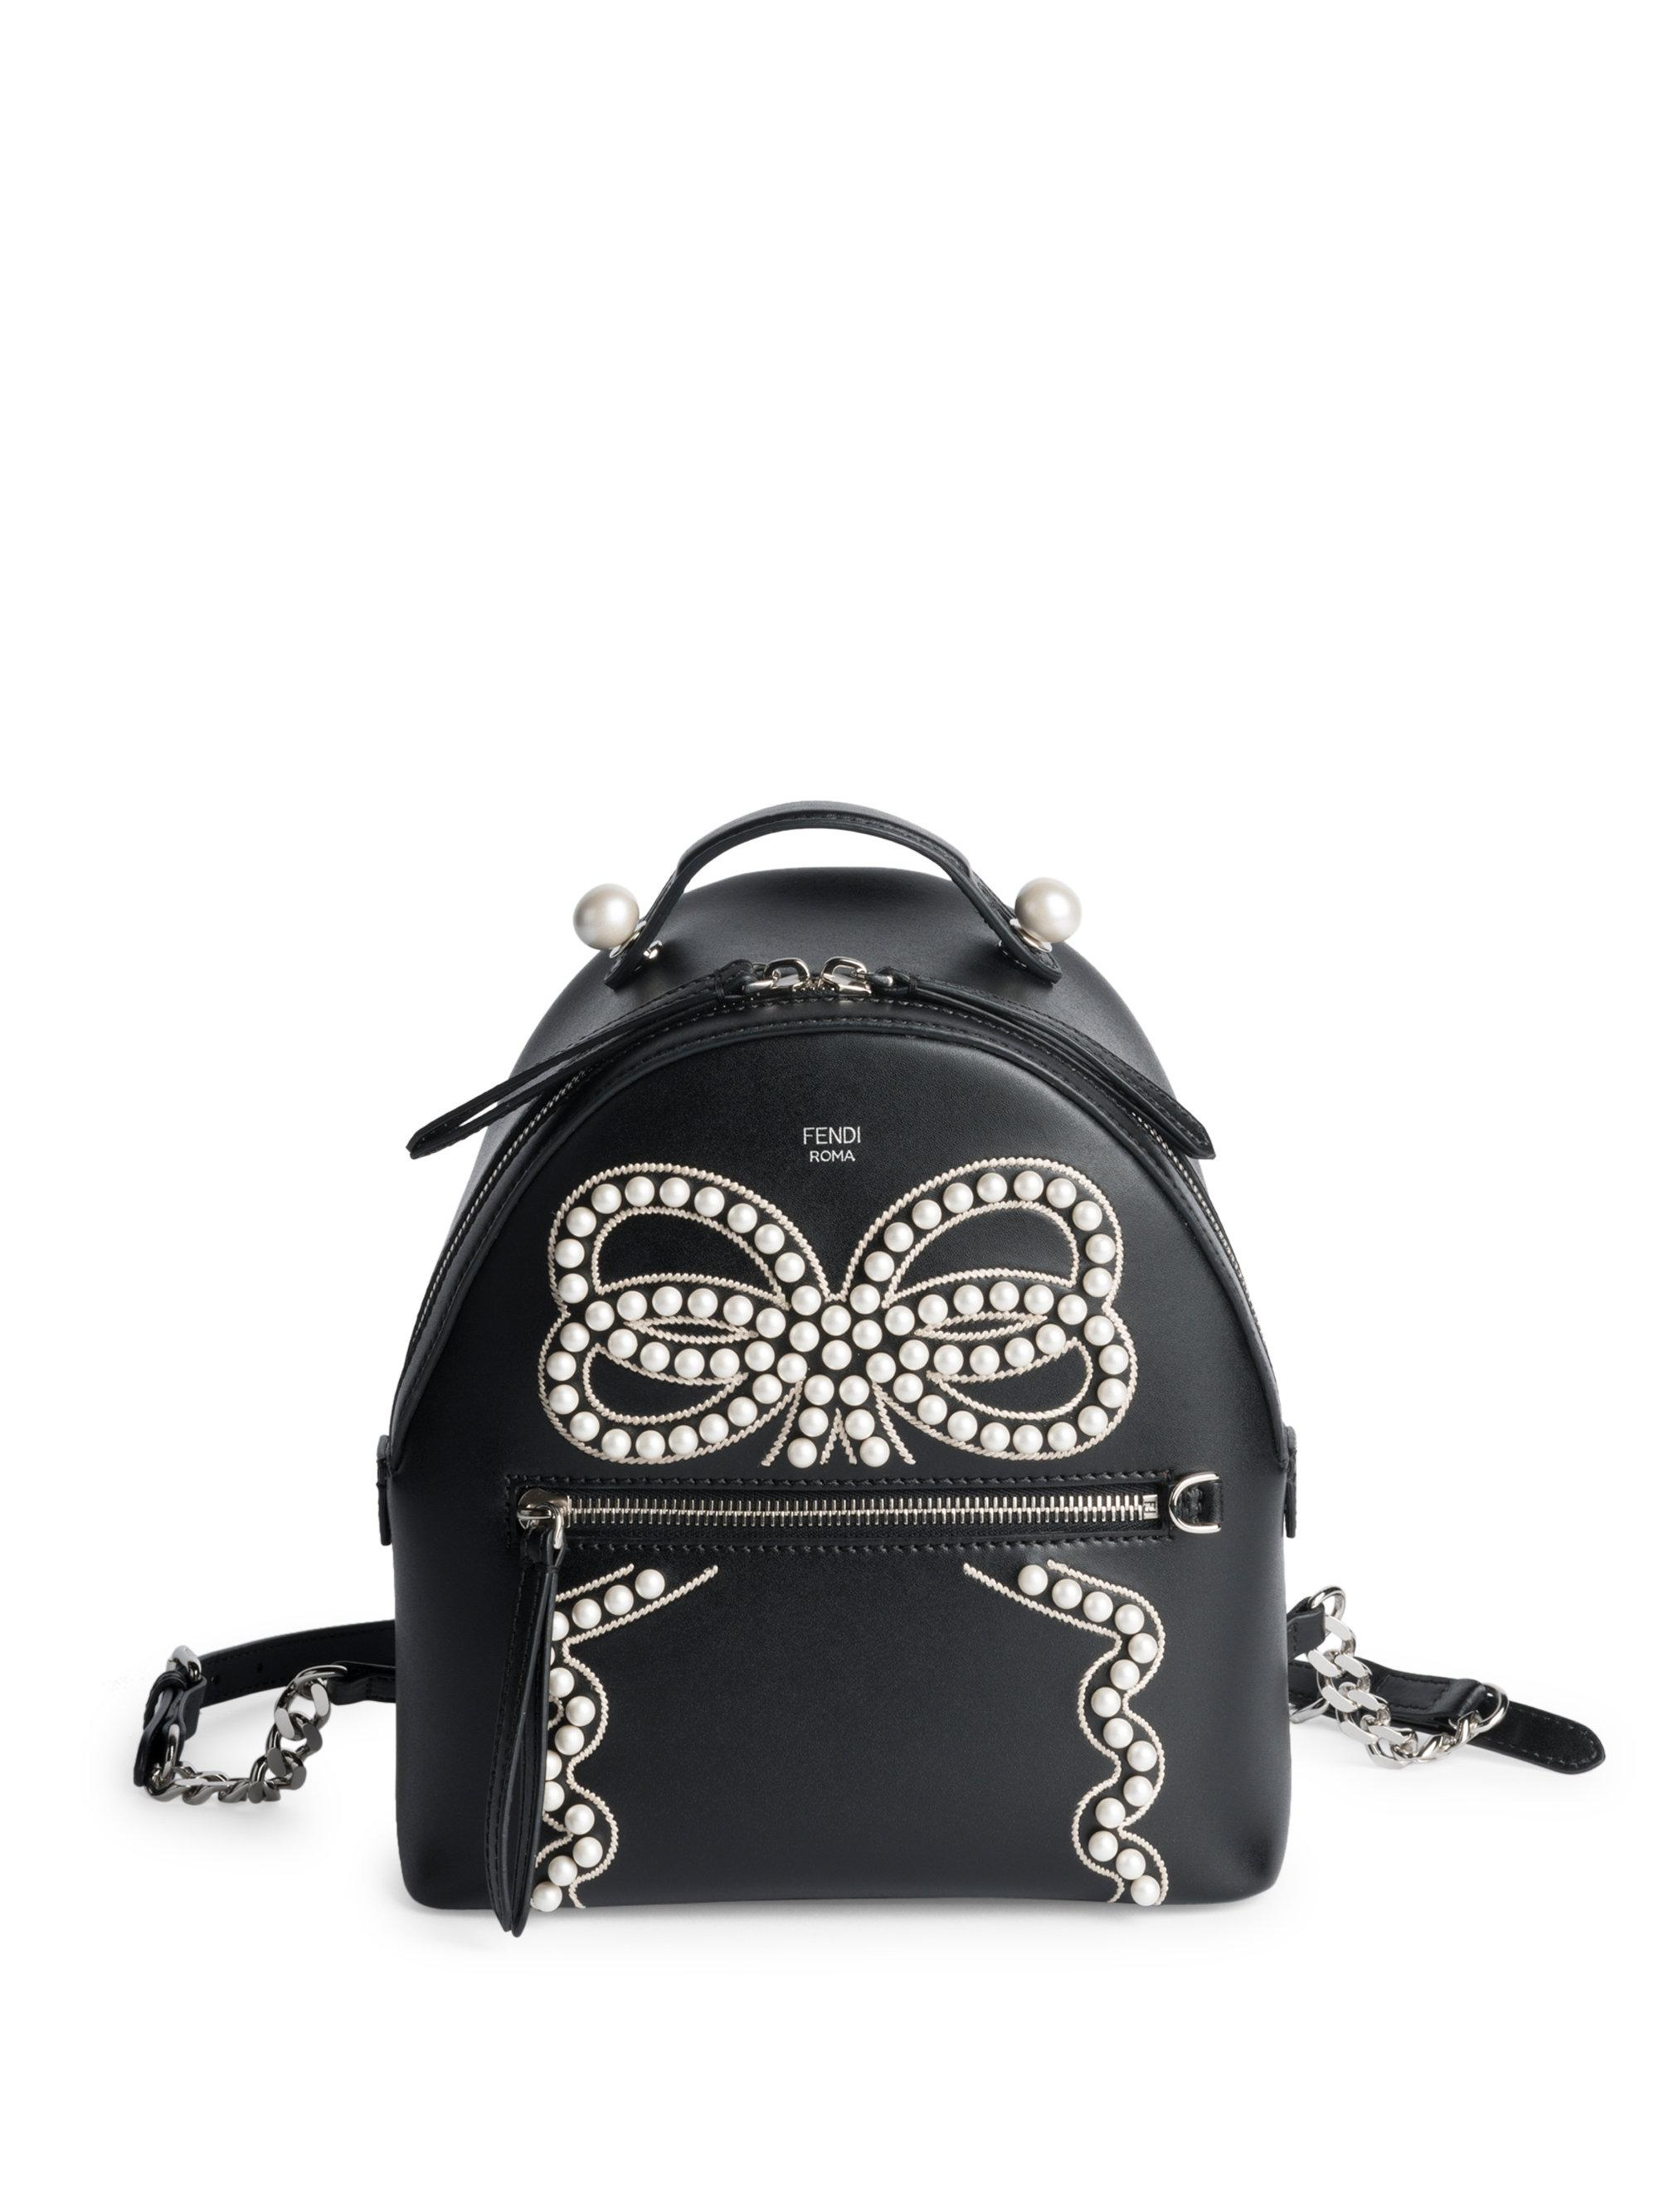 163641e98bce Lyst - Fendi Embroidered Mini Leather Backpack in Black